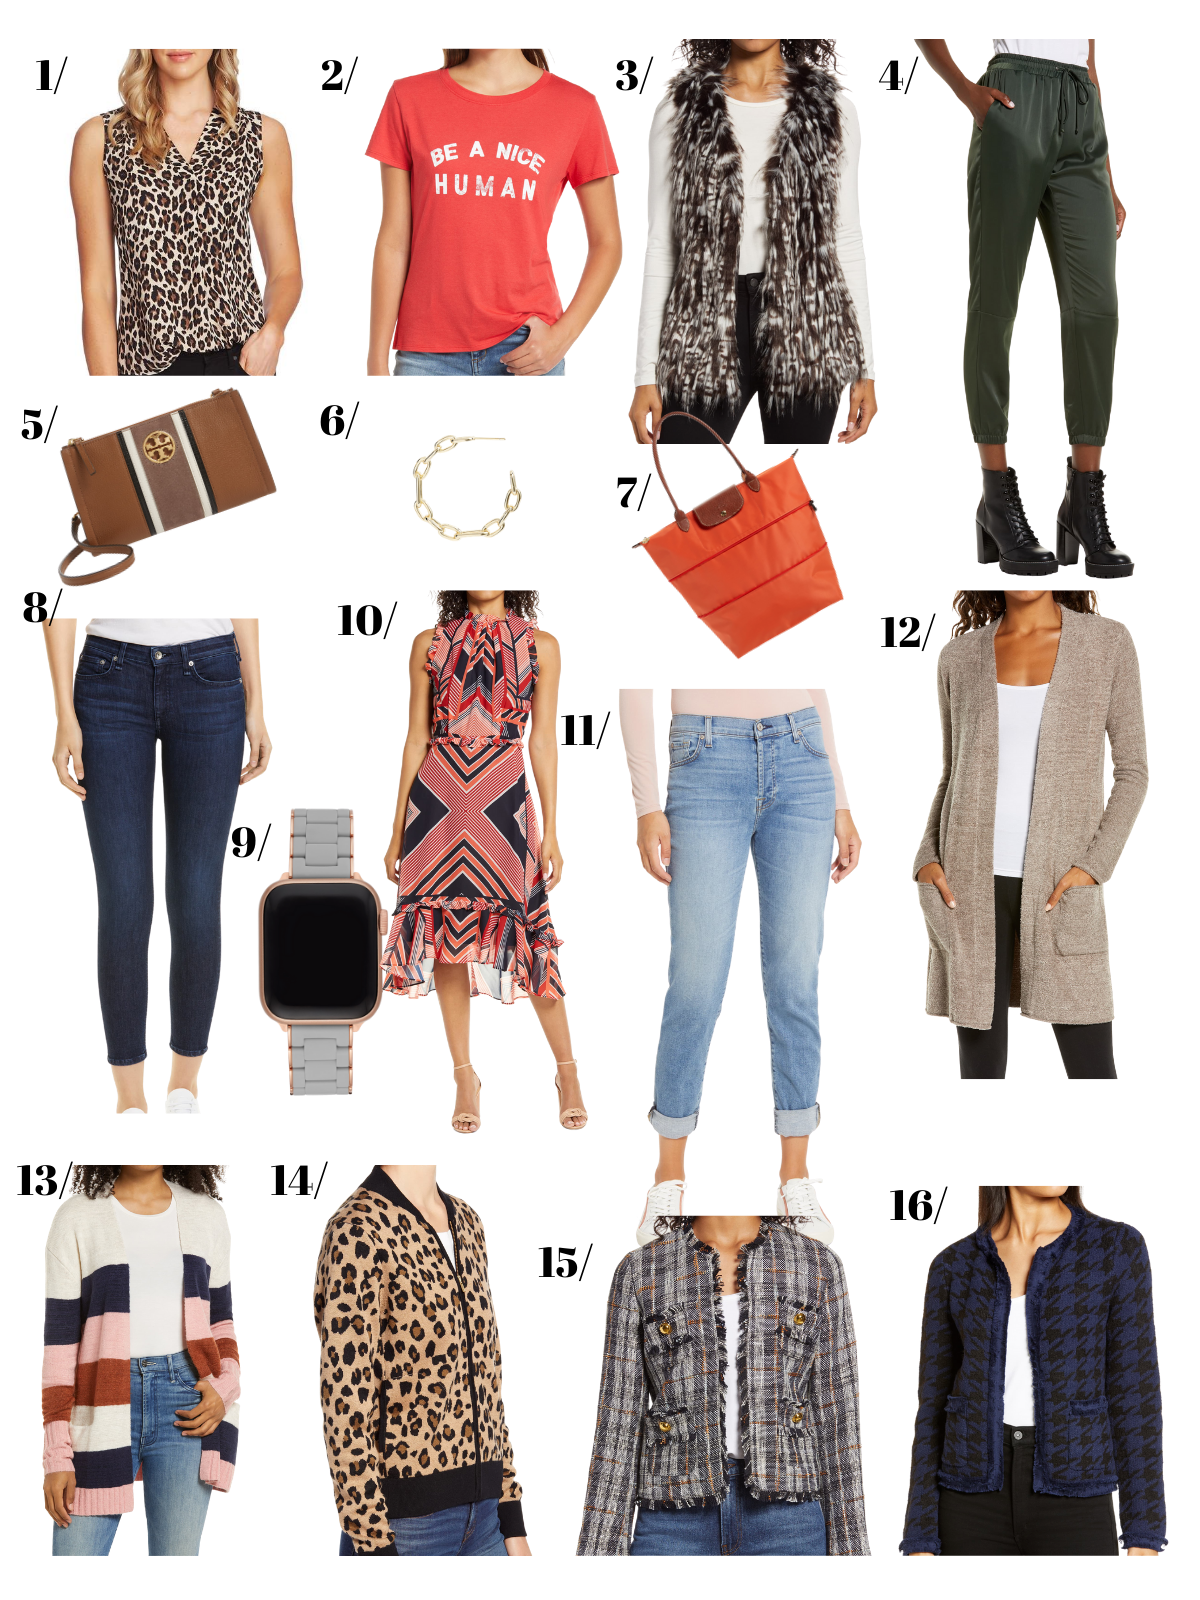 16 choices from the Nordstrom Anniversary Sale. Women's Clothing and Accessories